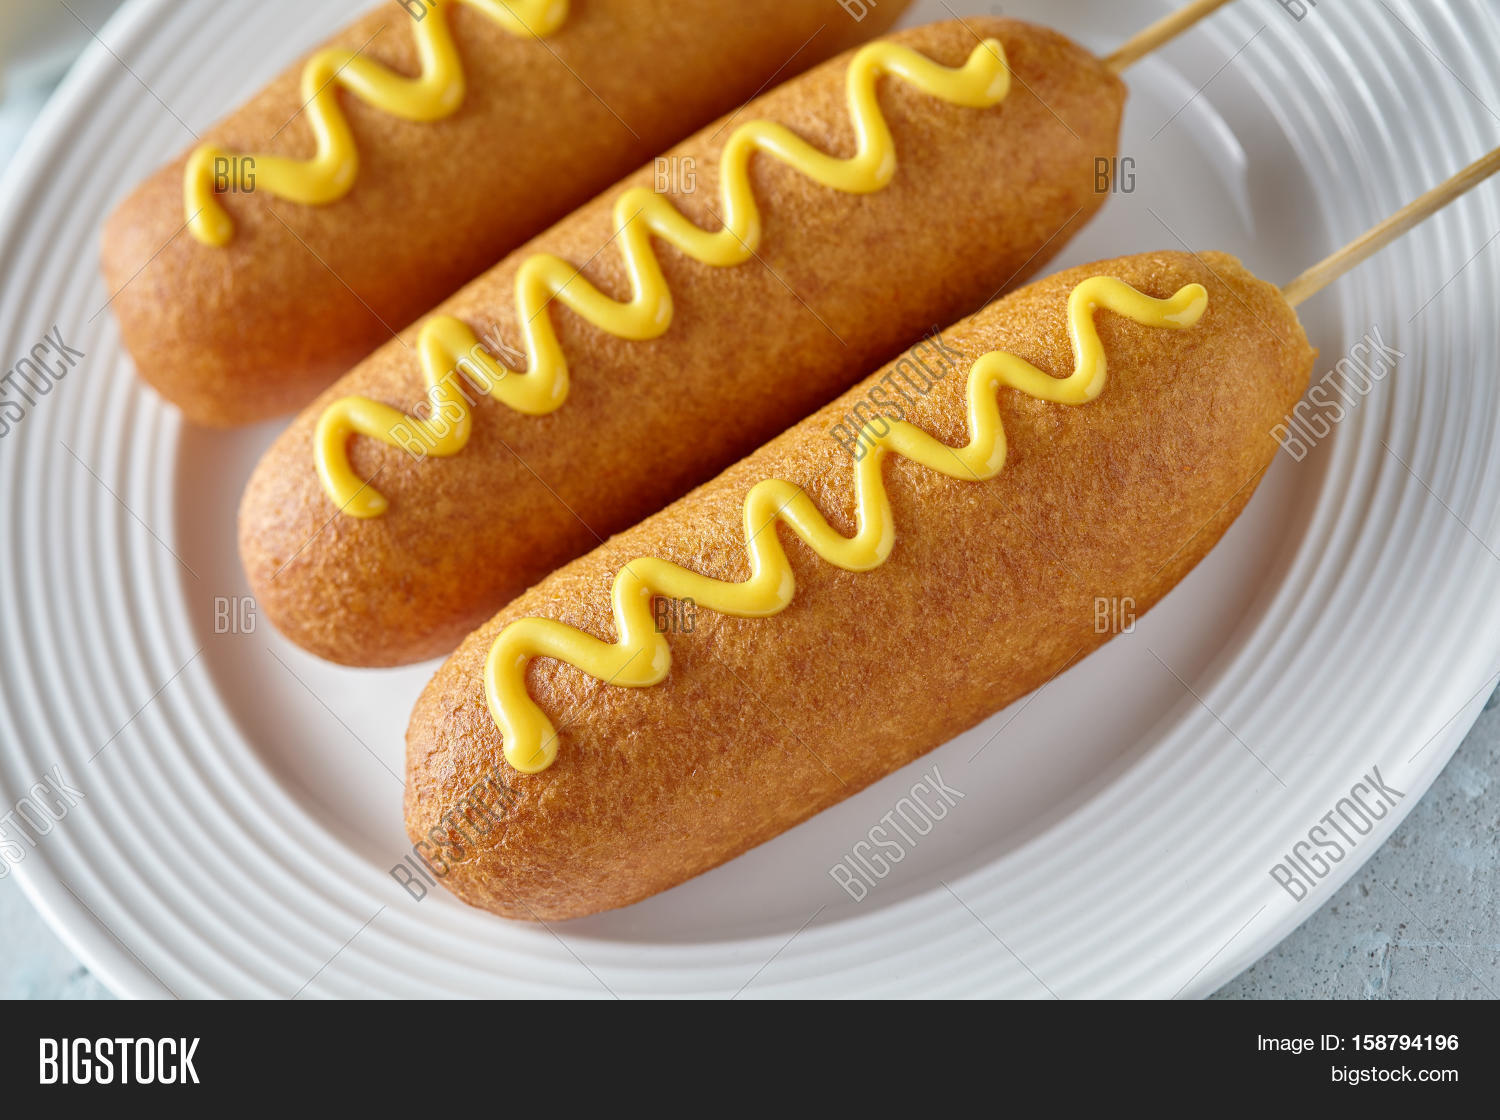 Corn dog traditional american food image photo bigstock for Authentic american cuisine